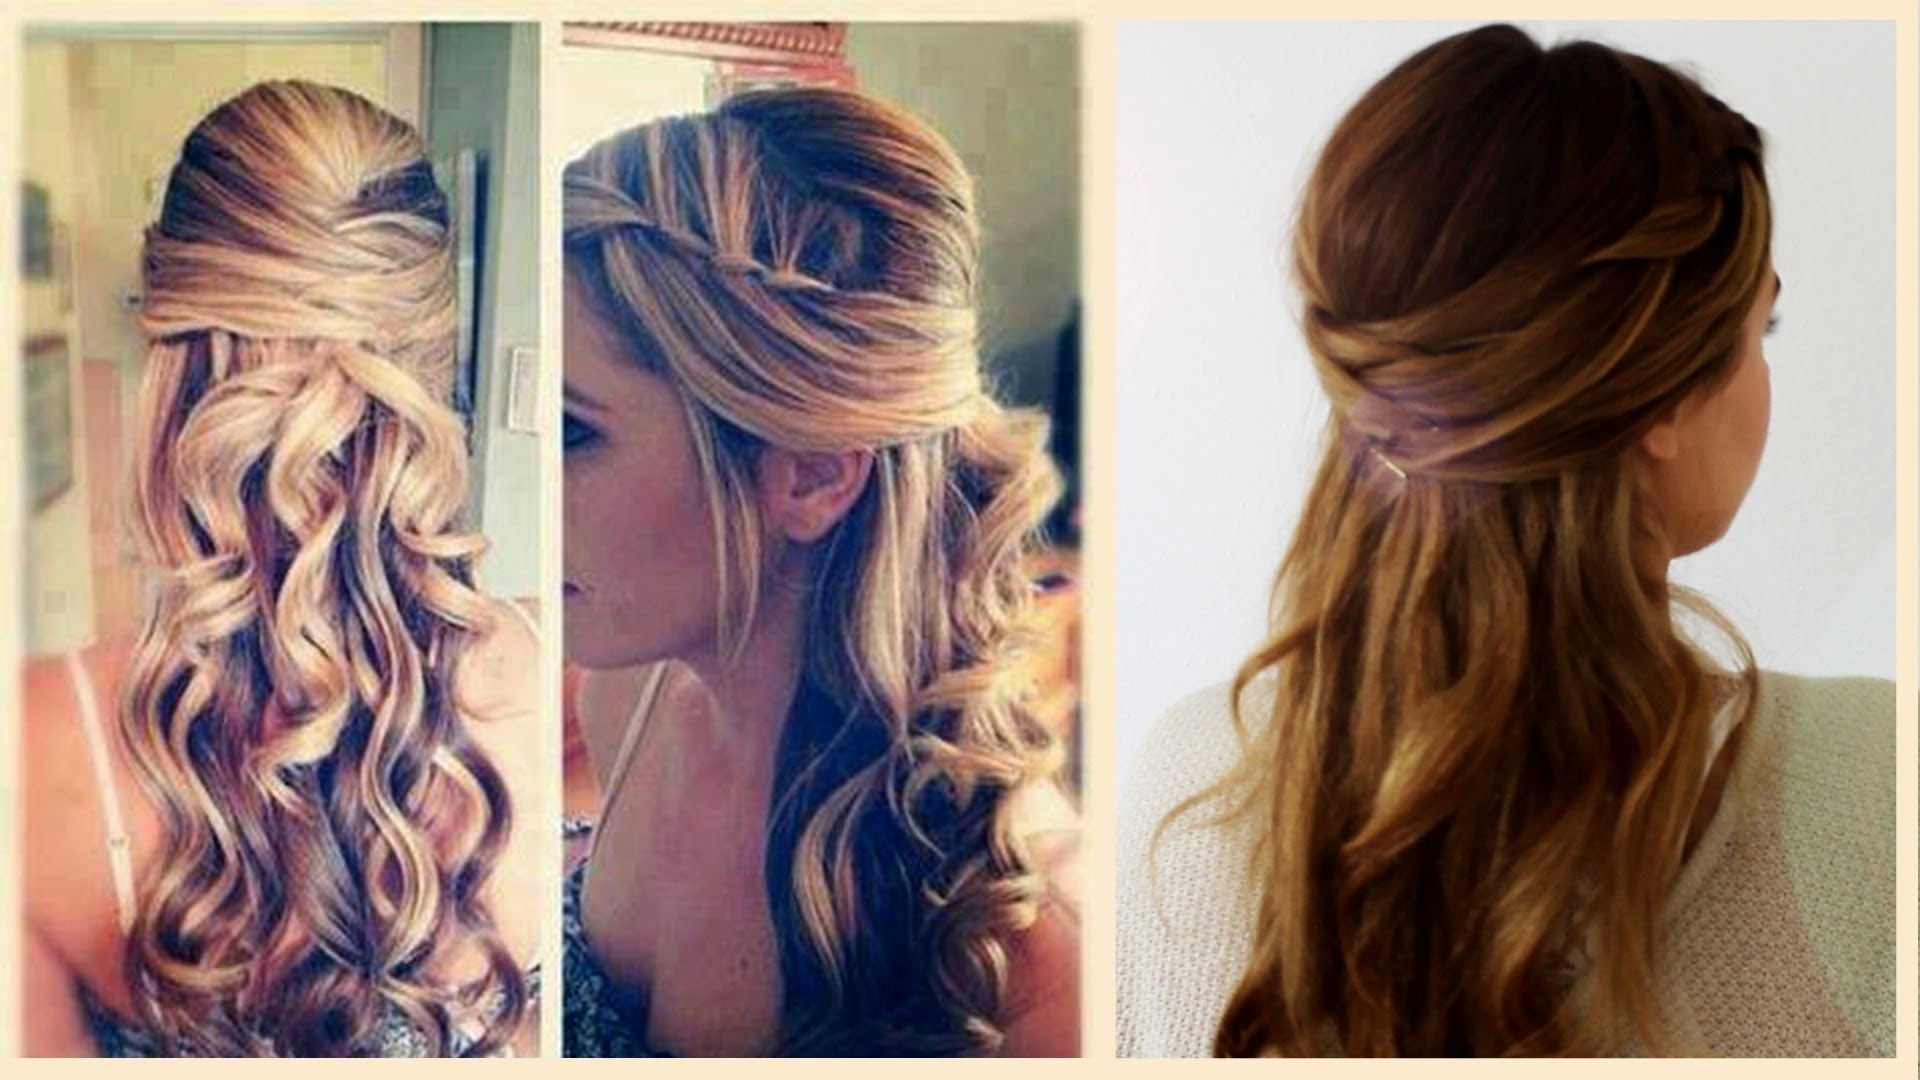 nice wedding hairstyles guest plan-top wedding hairstyles guest photo